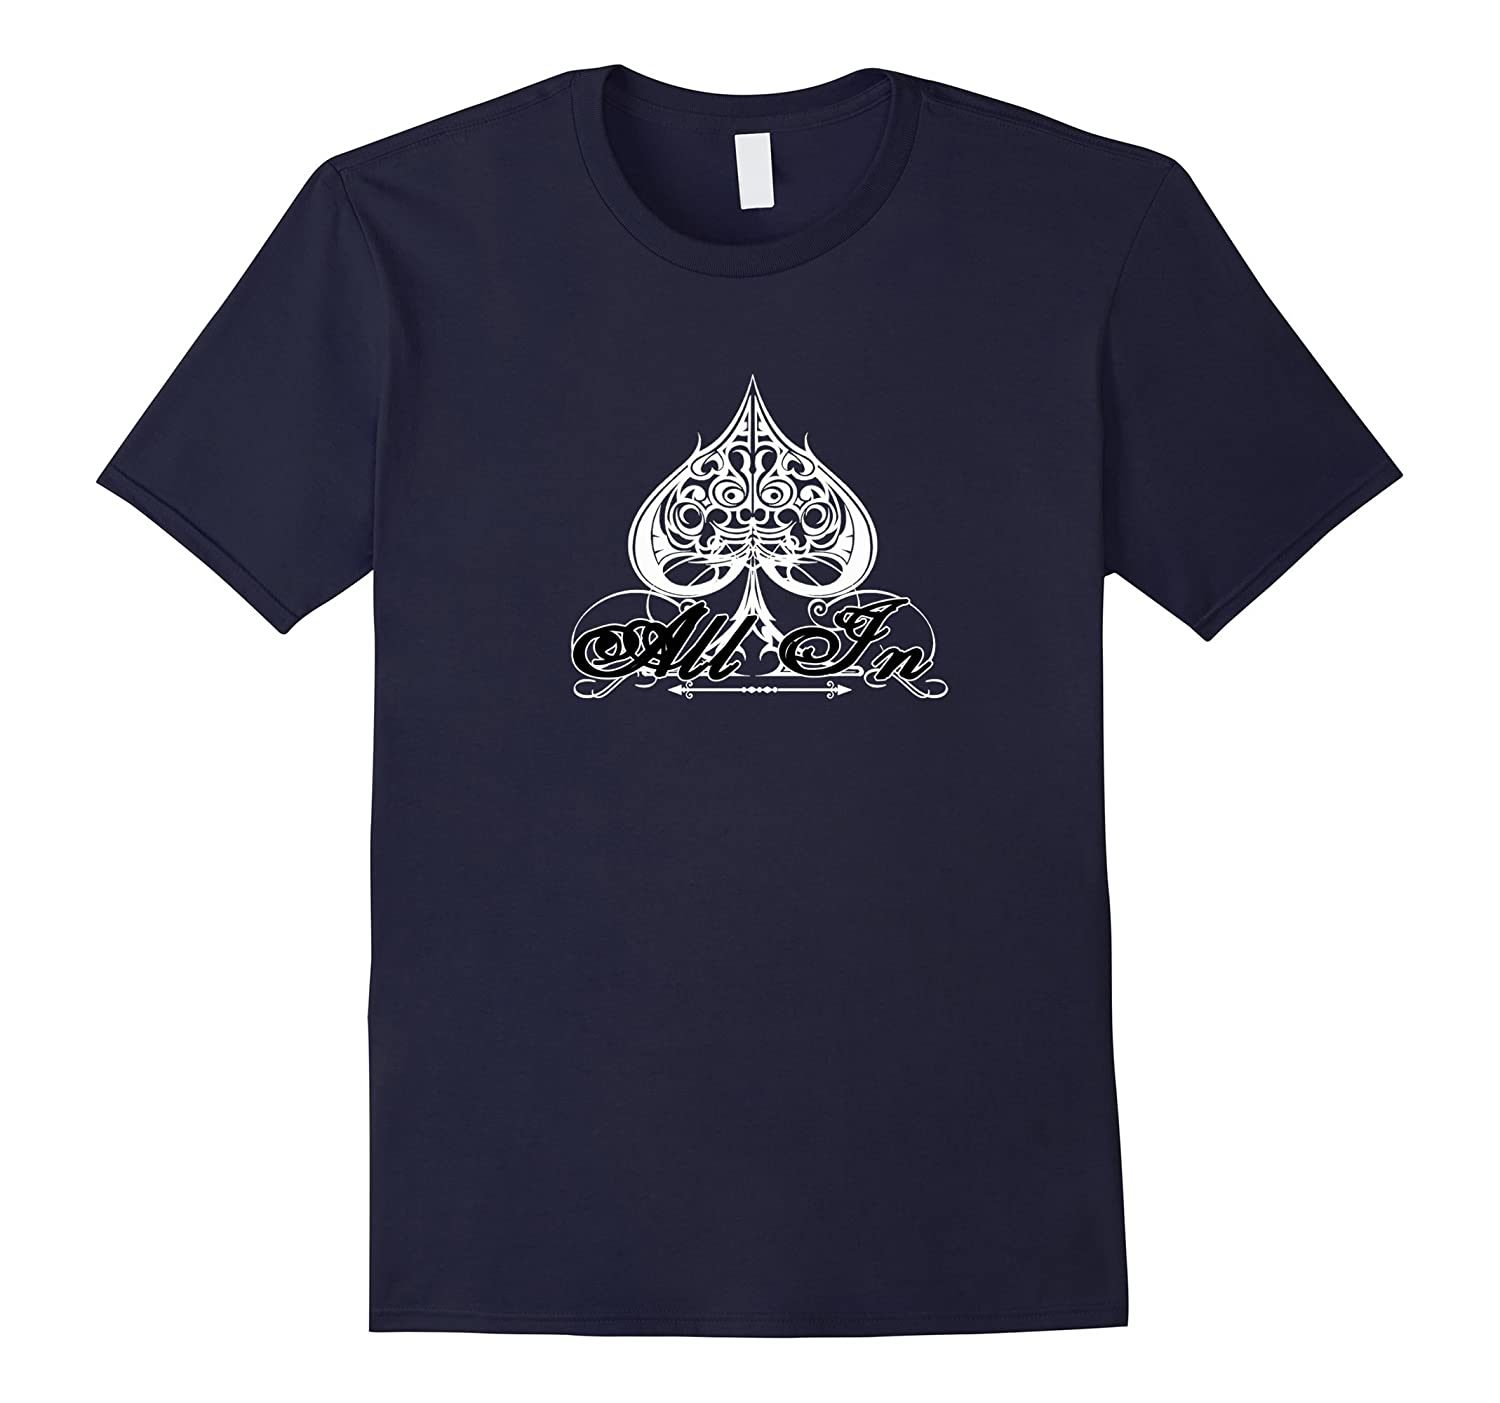 All In Poker Saying T-shirt Ace of Spades Playing Card Tee